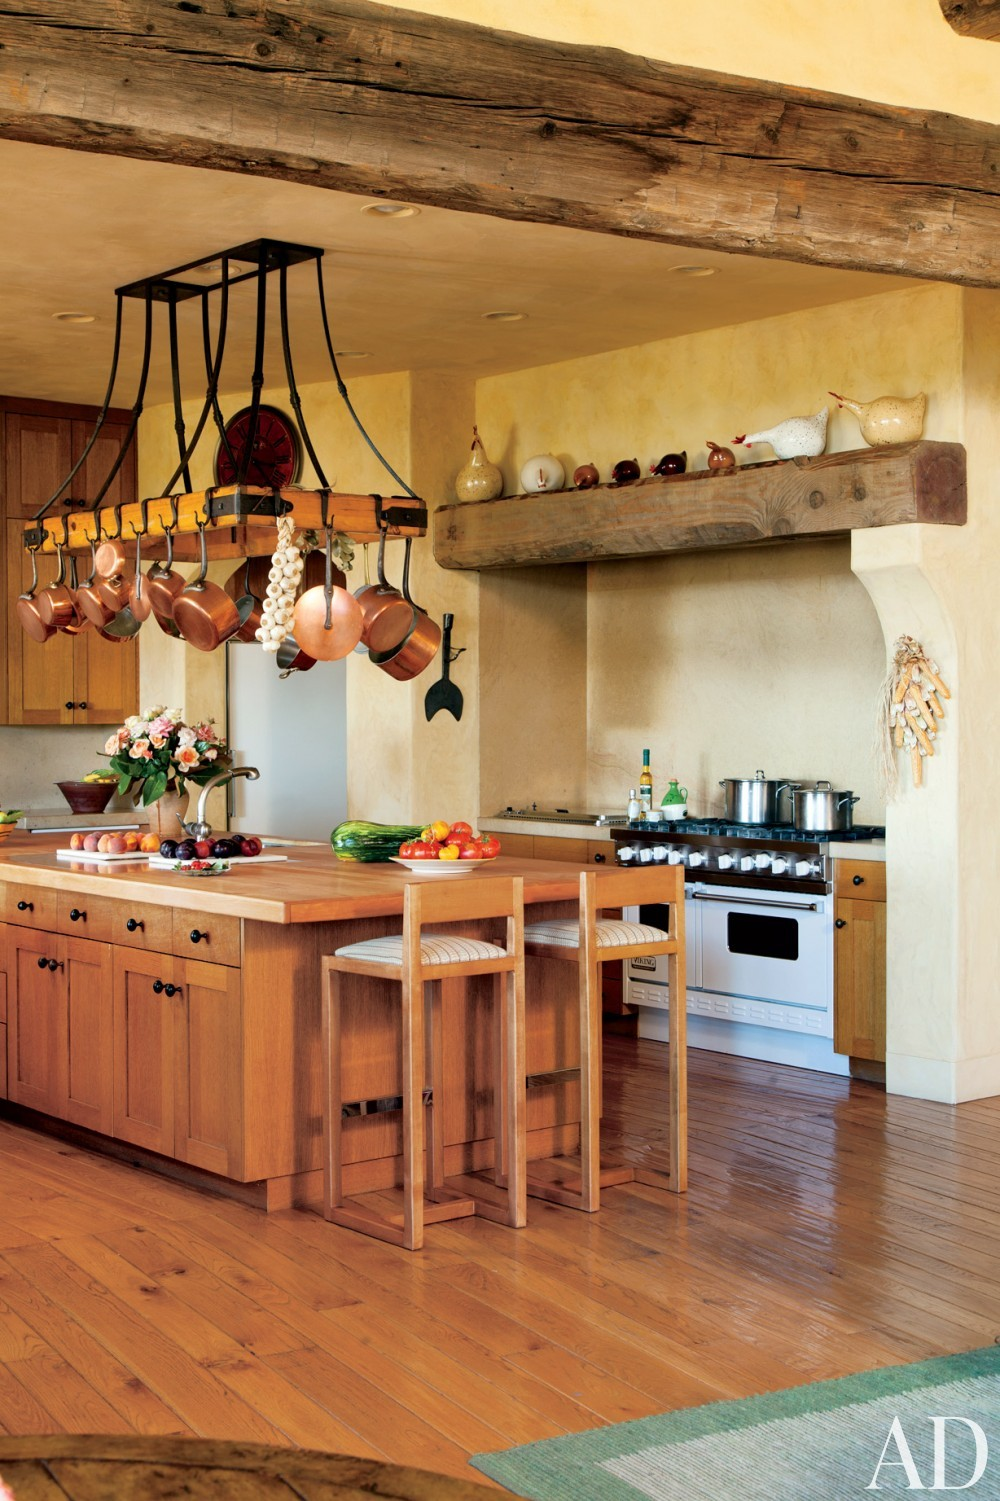 Contemporary Kitchen by Mica Ertegun and Walker & Moody Architects in Sonoma Valley, CA